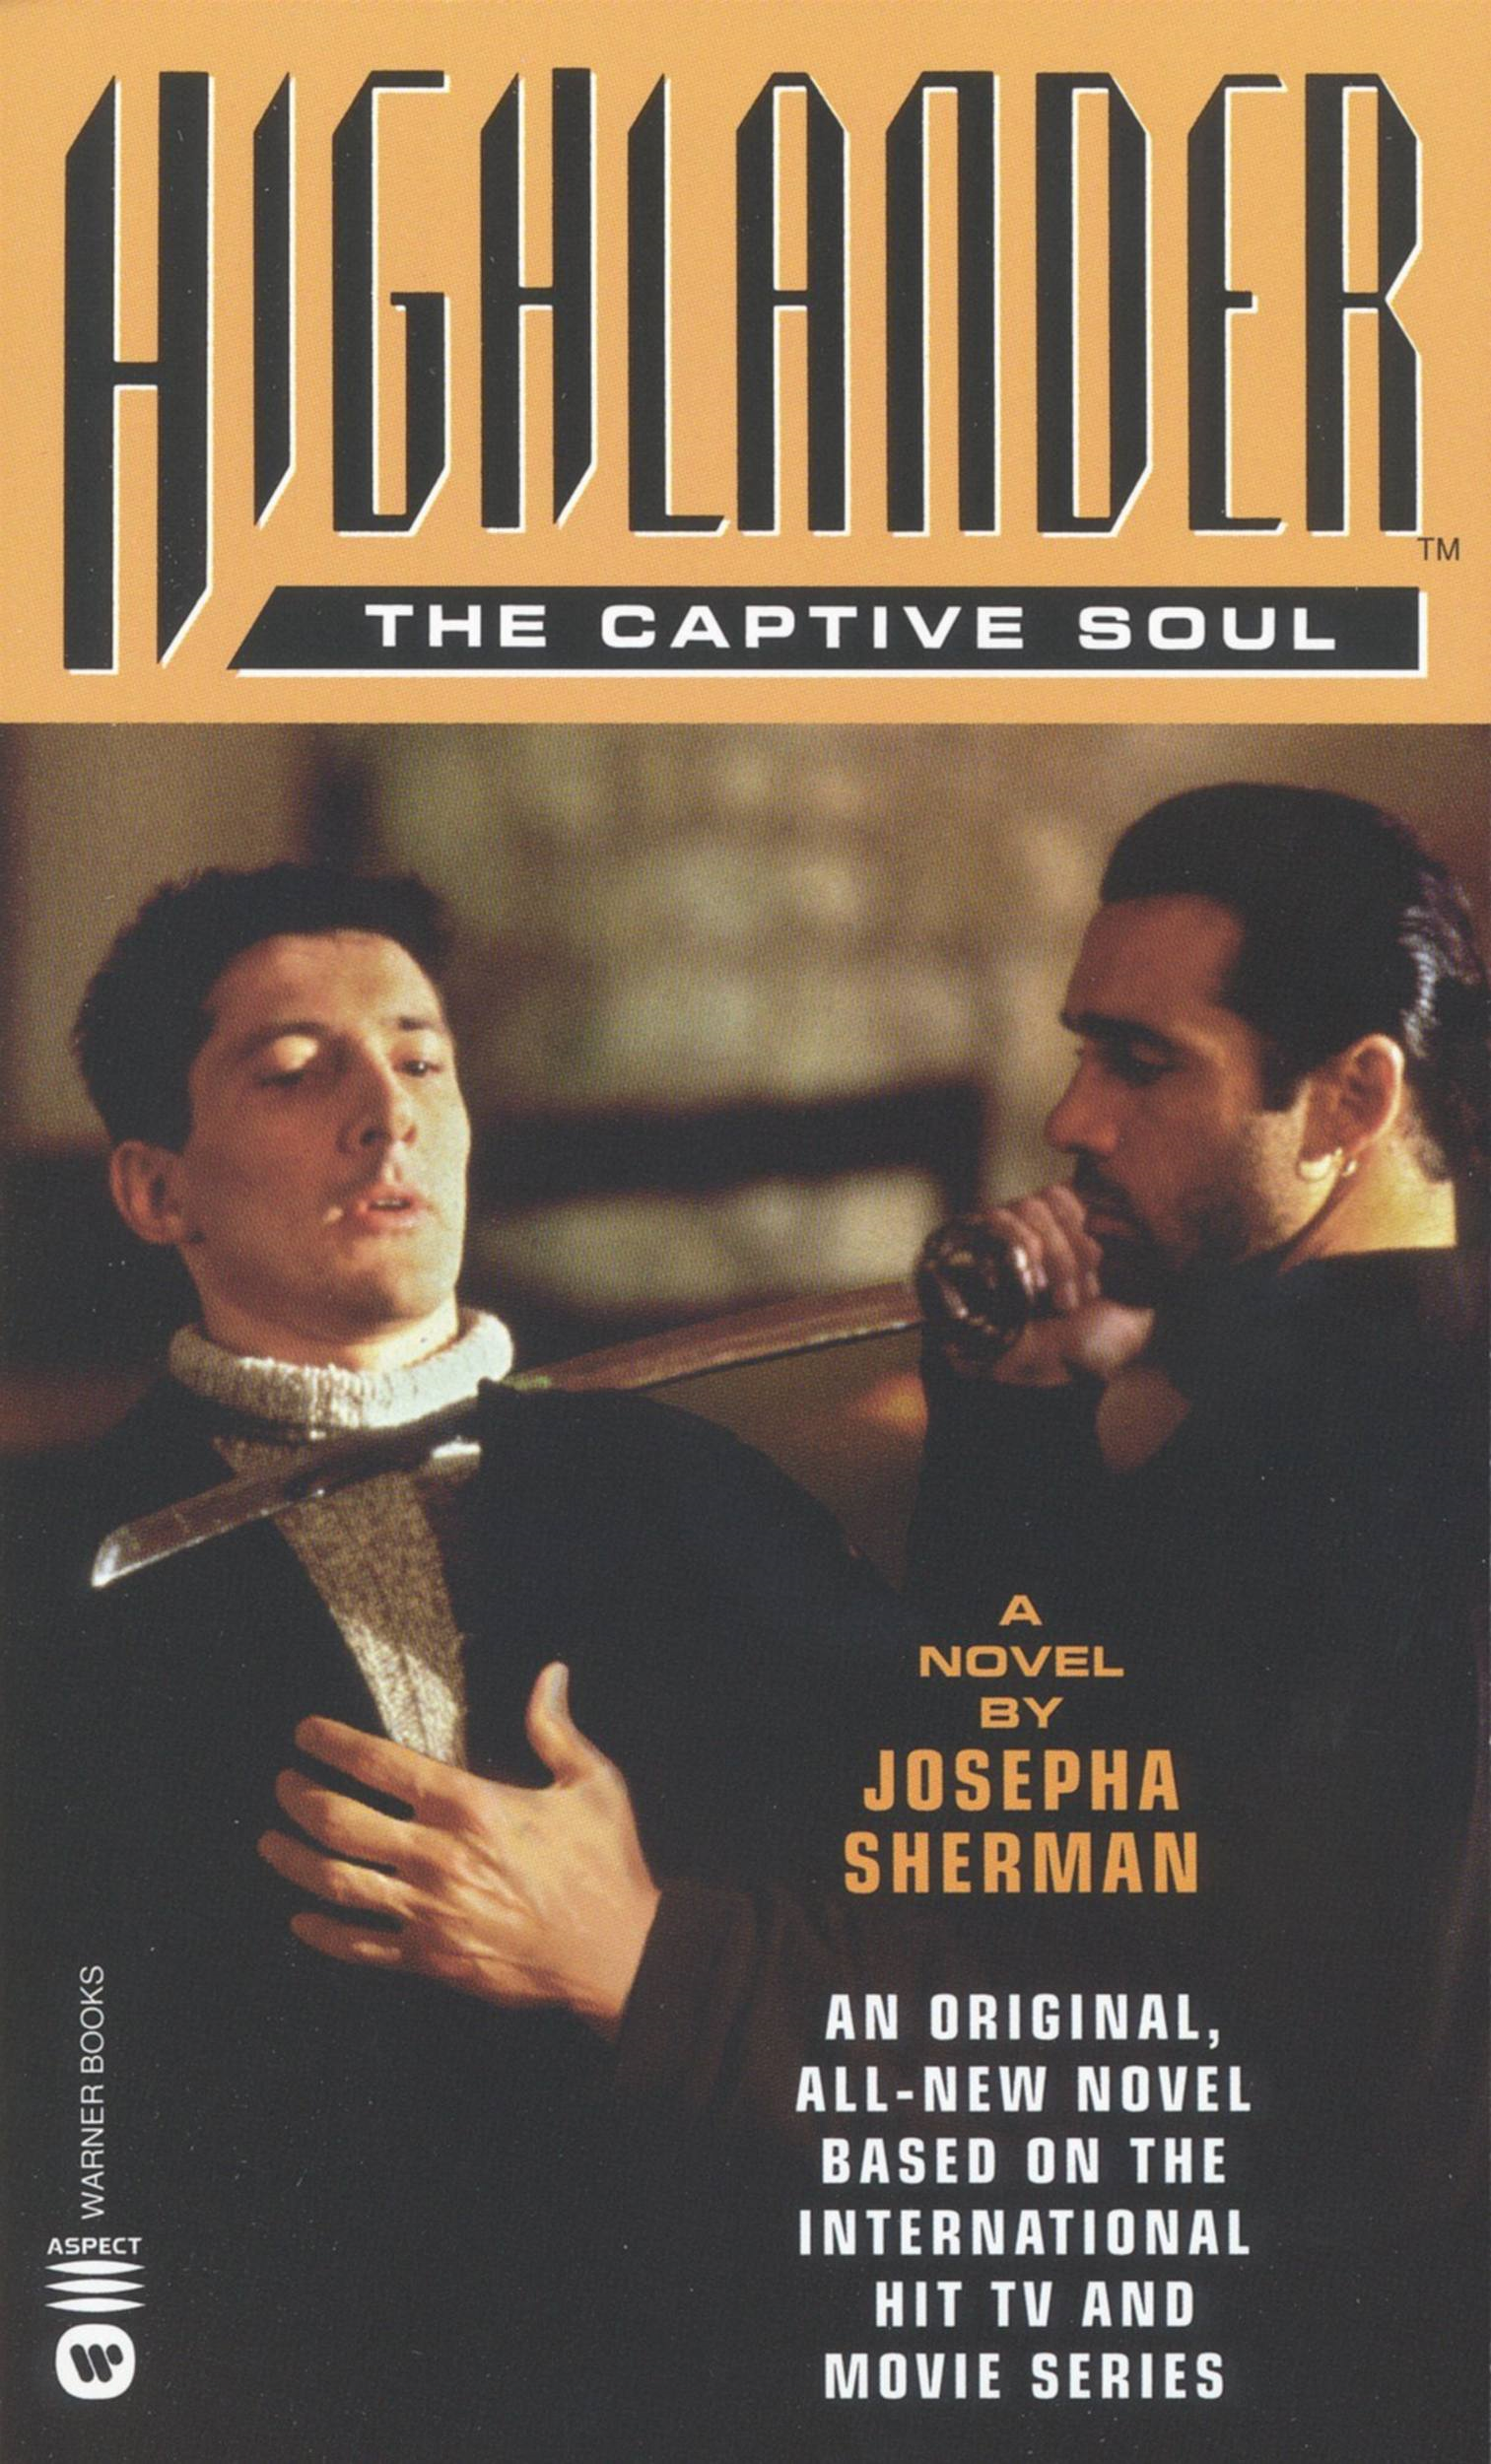 Highlander(TM): The Captive Soul By: Josepha Sherman